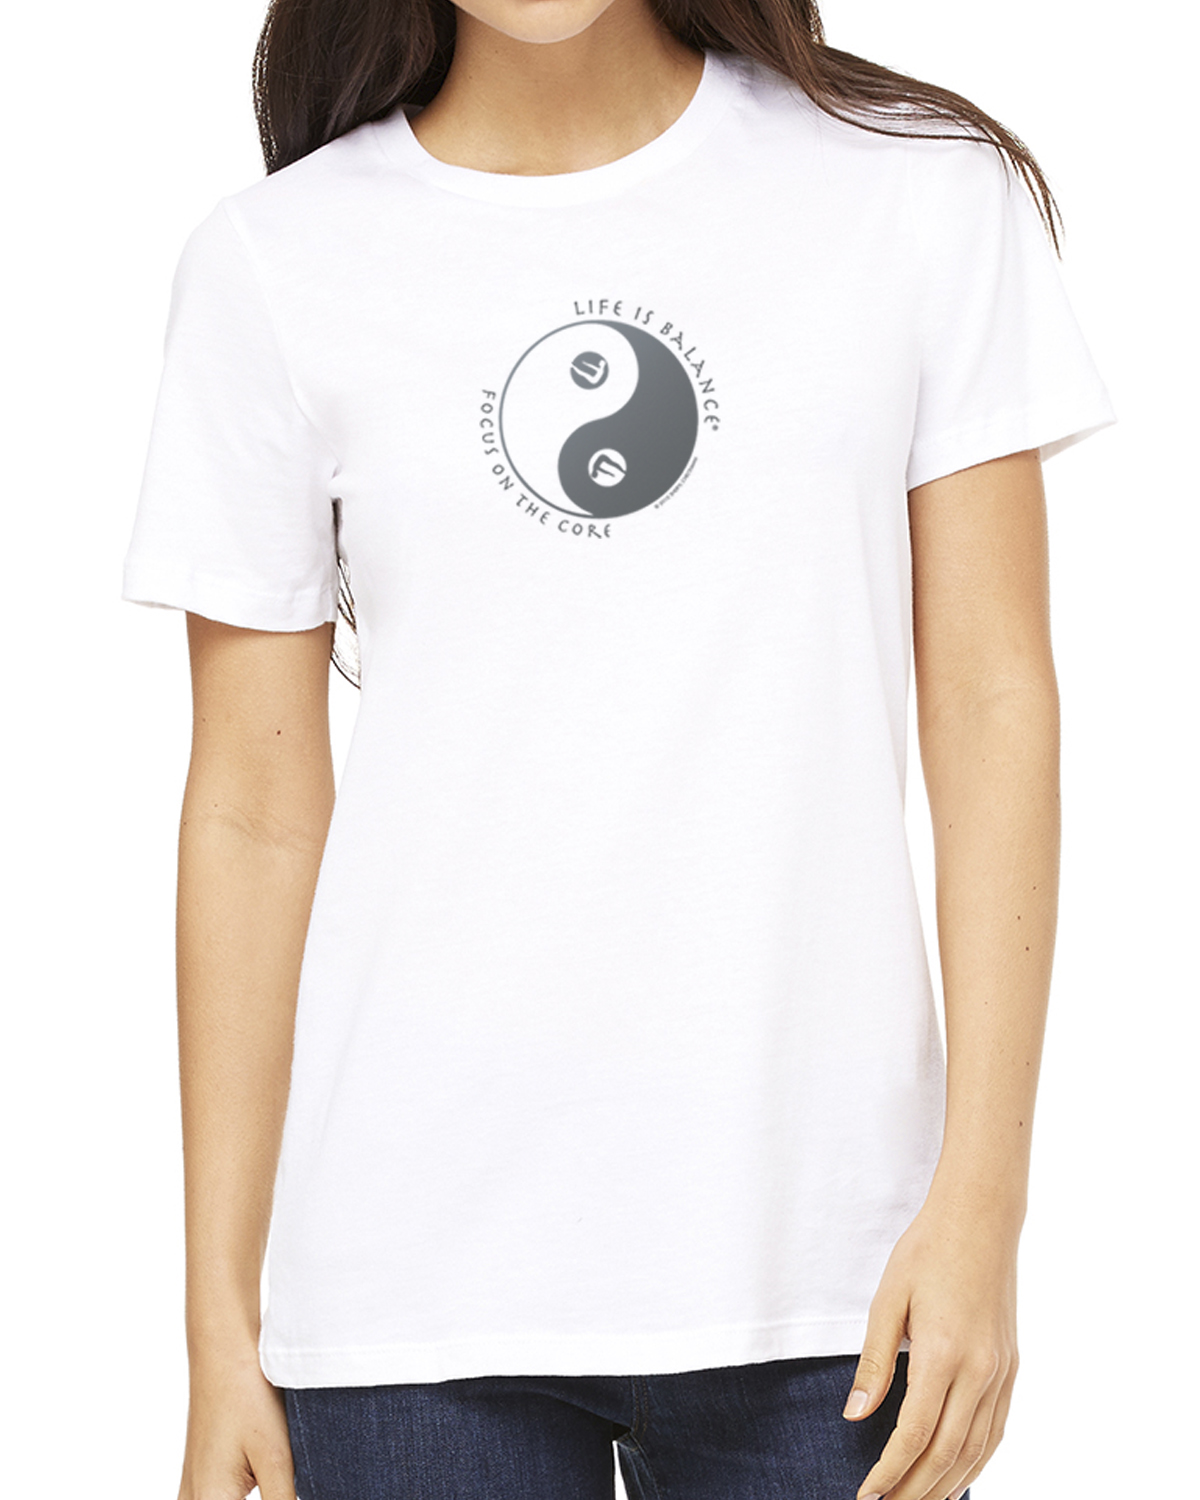 Pilates T-Shirt for Women (White)